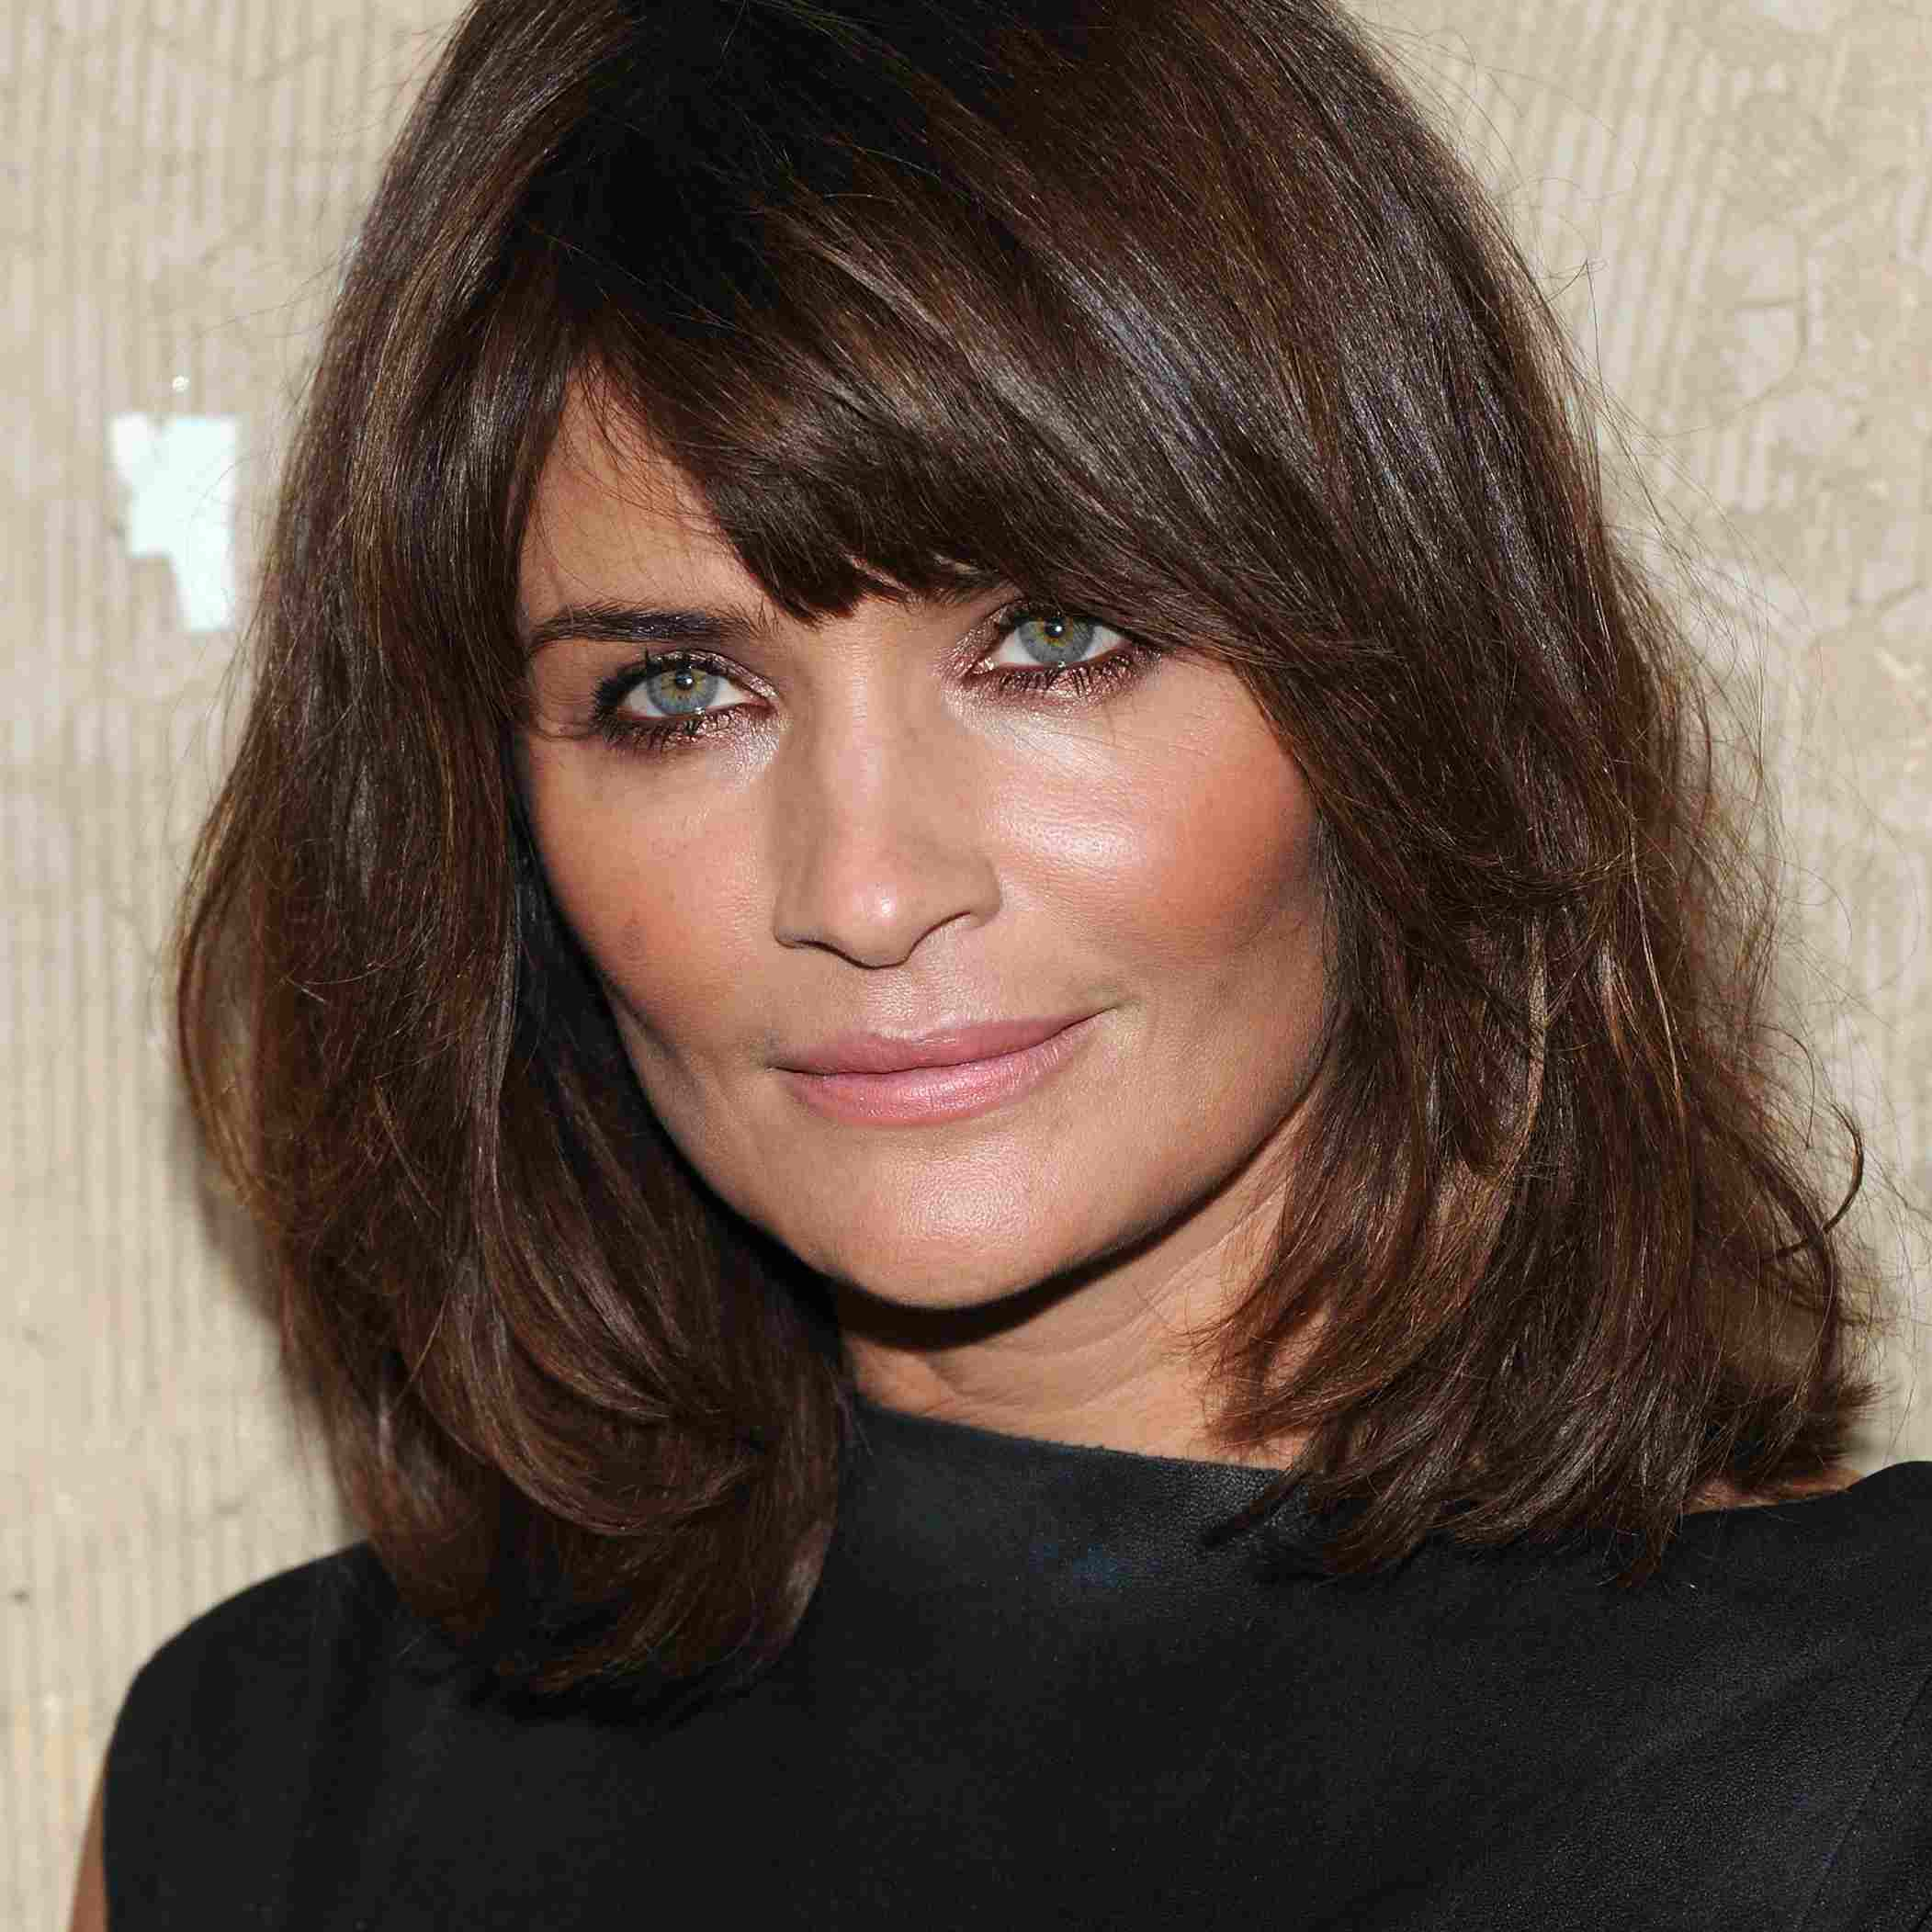 Side-swept Bangs, Shoulder-length Hair for Square Faces